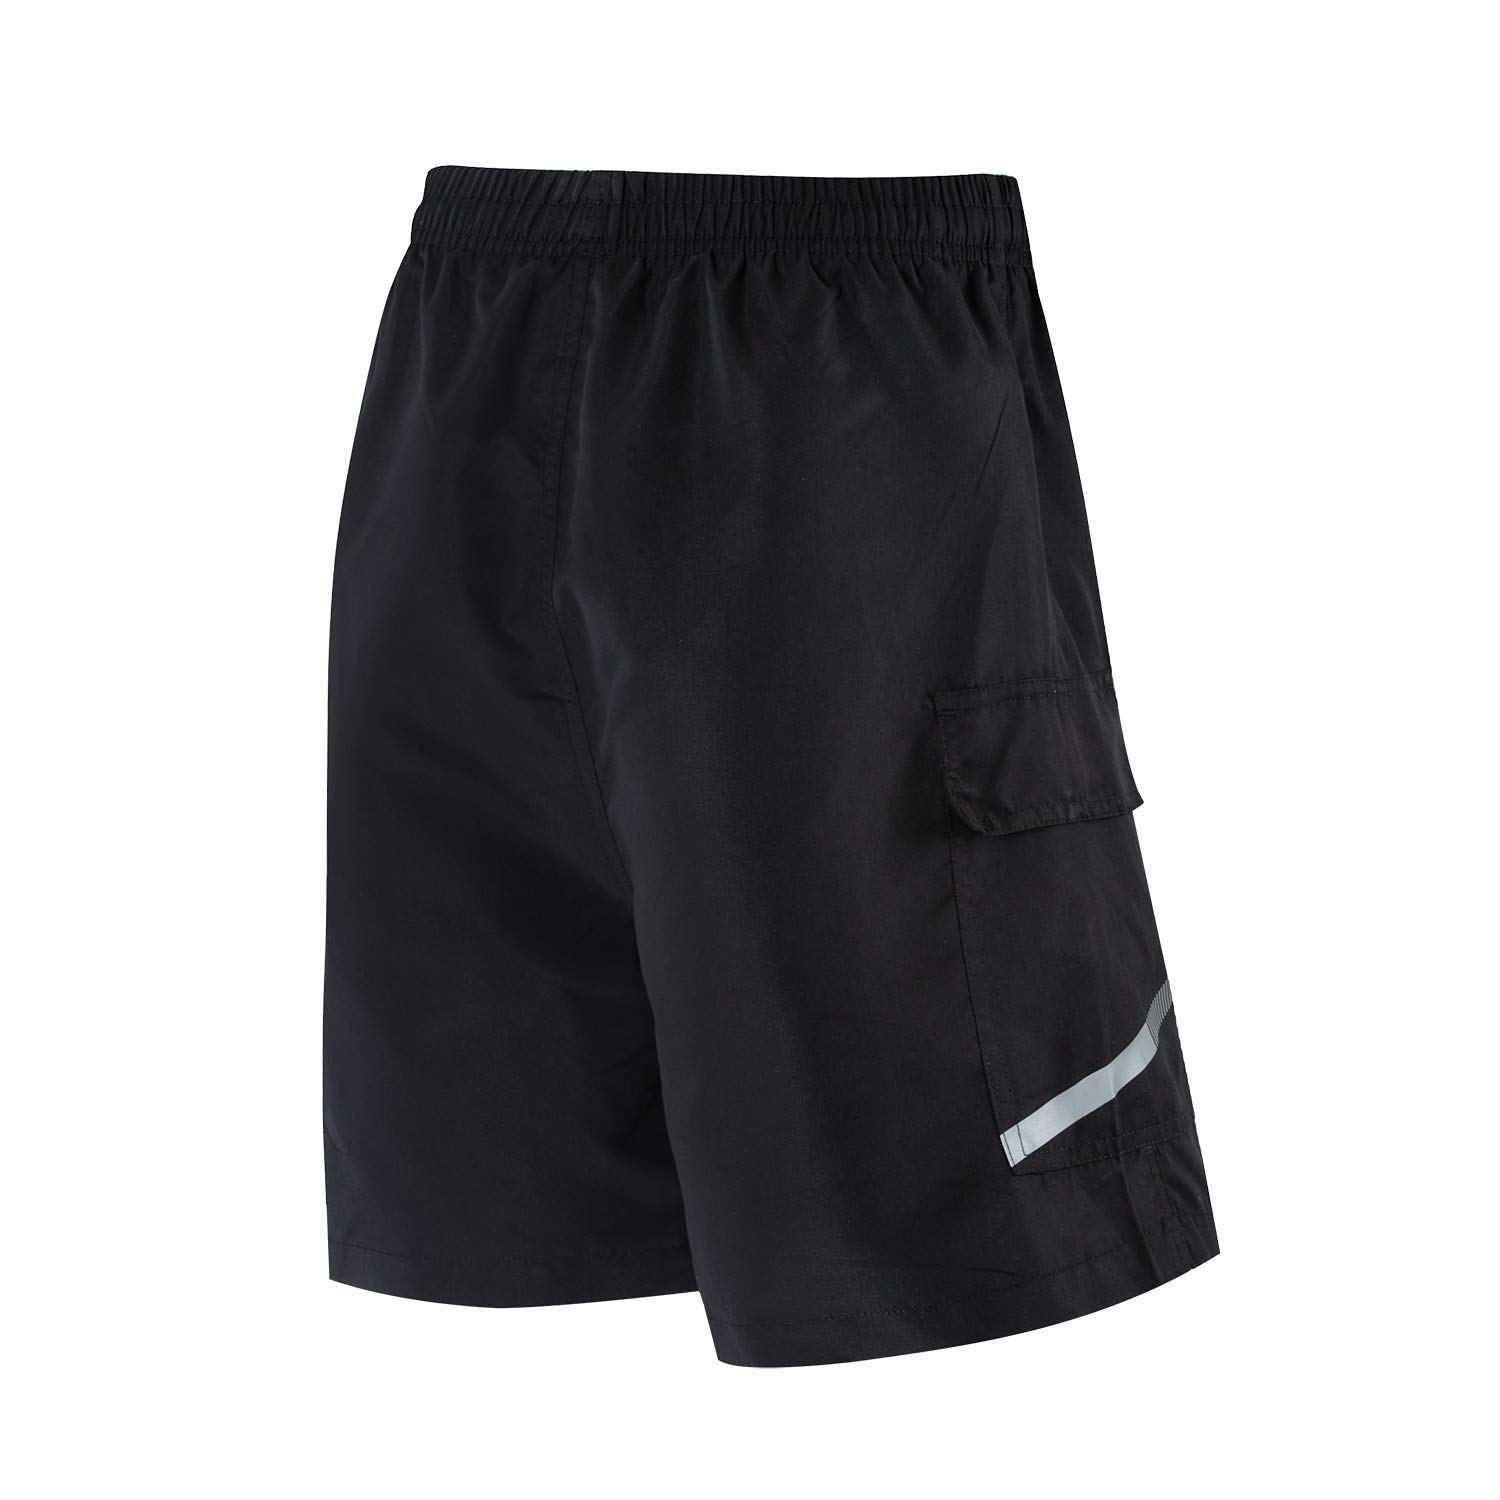 Bpbtti Mens Baggy MTB Mountain Bike Shorts with Removable Biking Bicycle Cycling Padded Liner Short